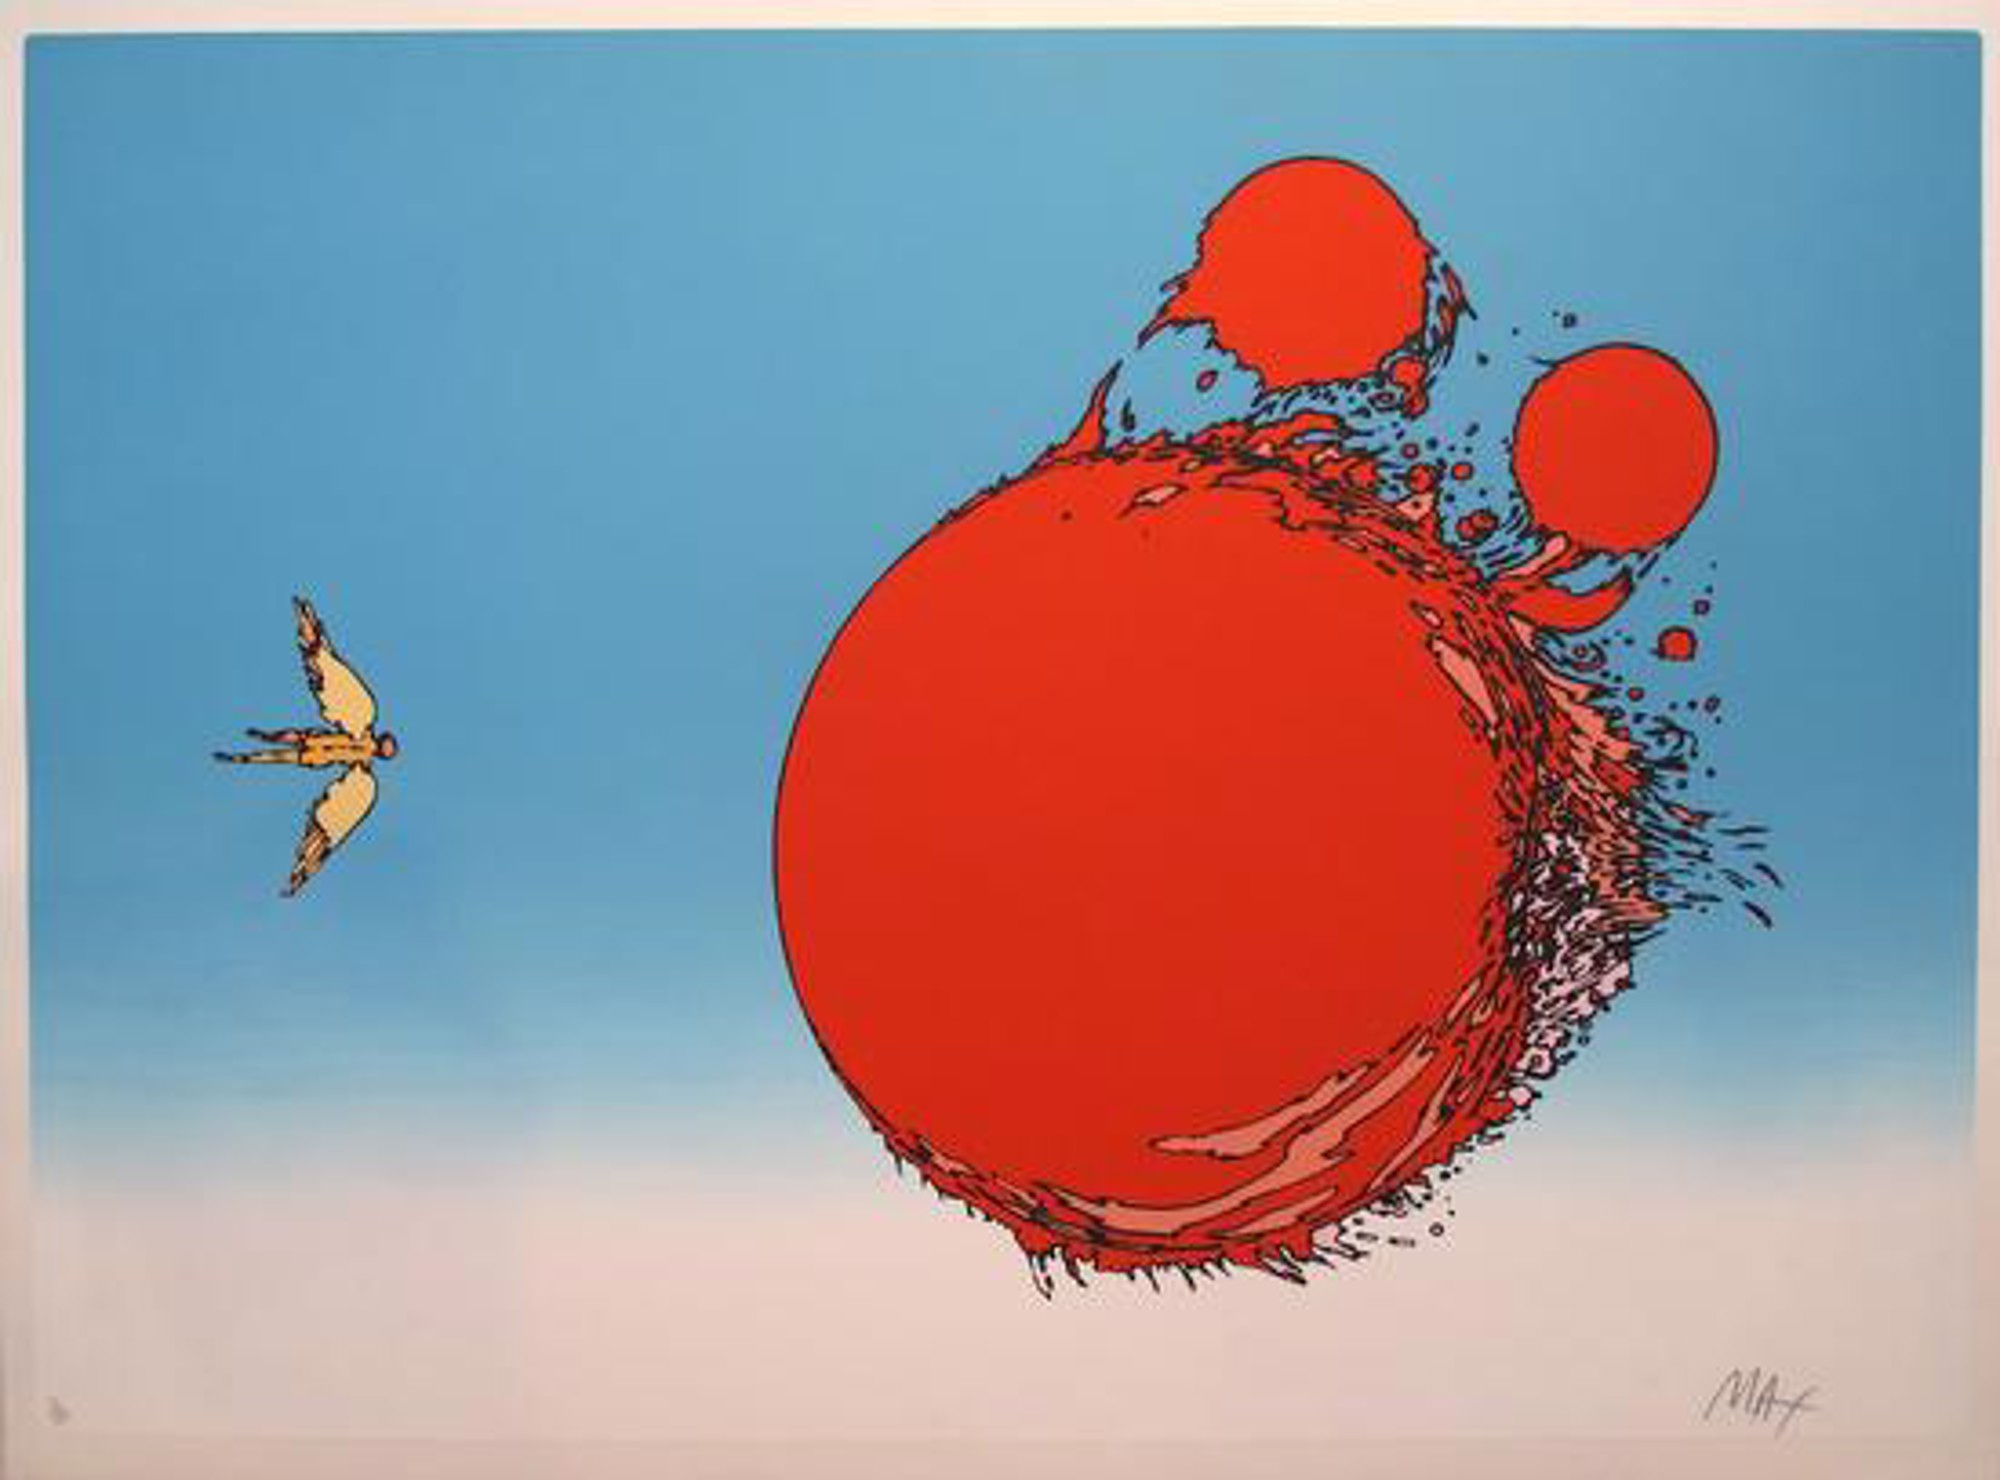 Ball of Fire (Icarus) by Peter Max